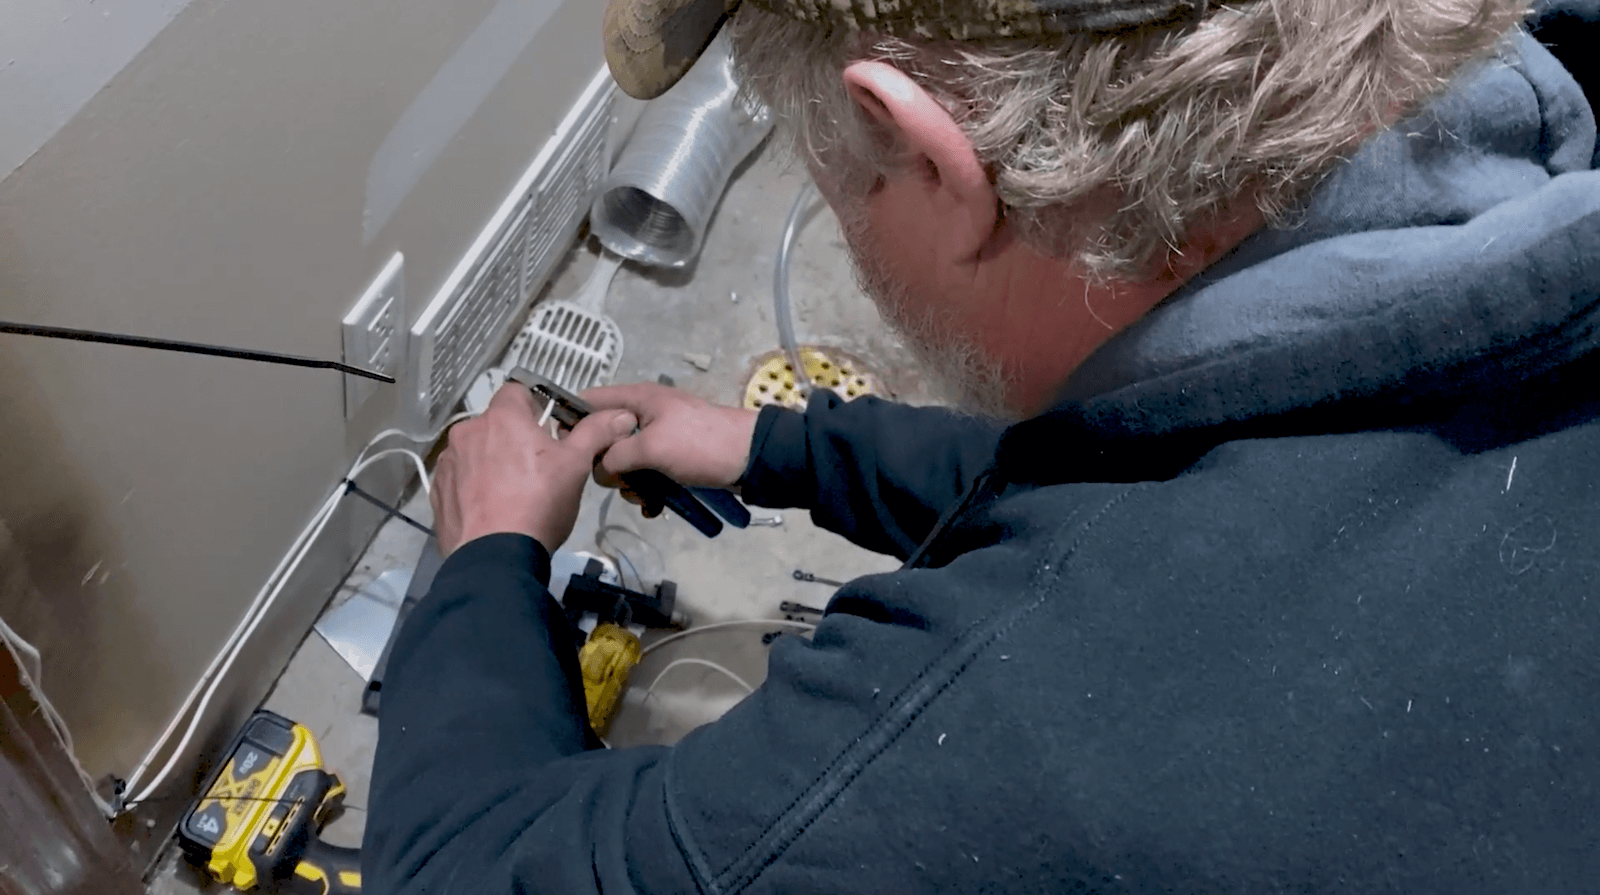 HVAC Technician Using Tools